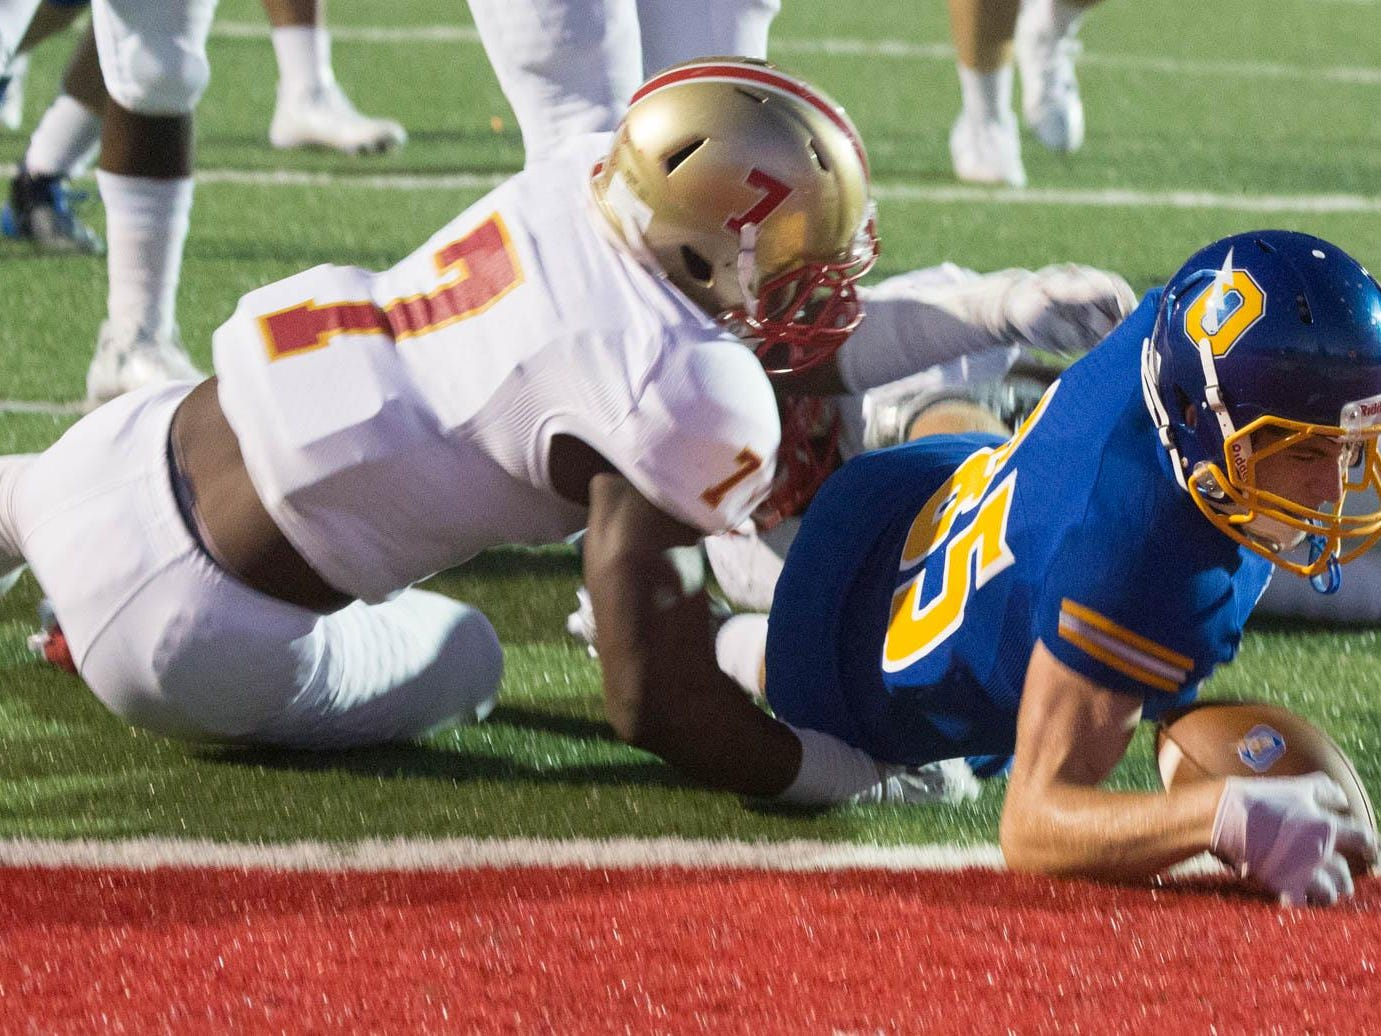 Oxford's Ken Presley takes it across the goal line for six points as Lafayette's Quin Jones tries to stop him.